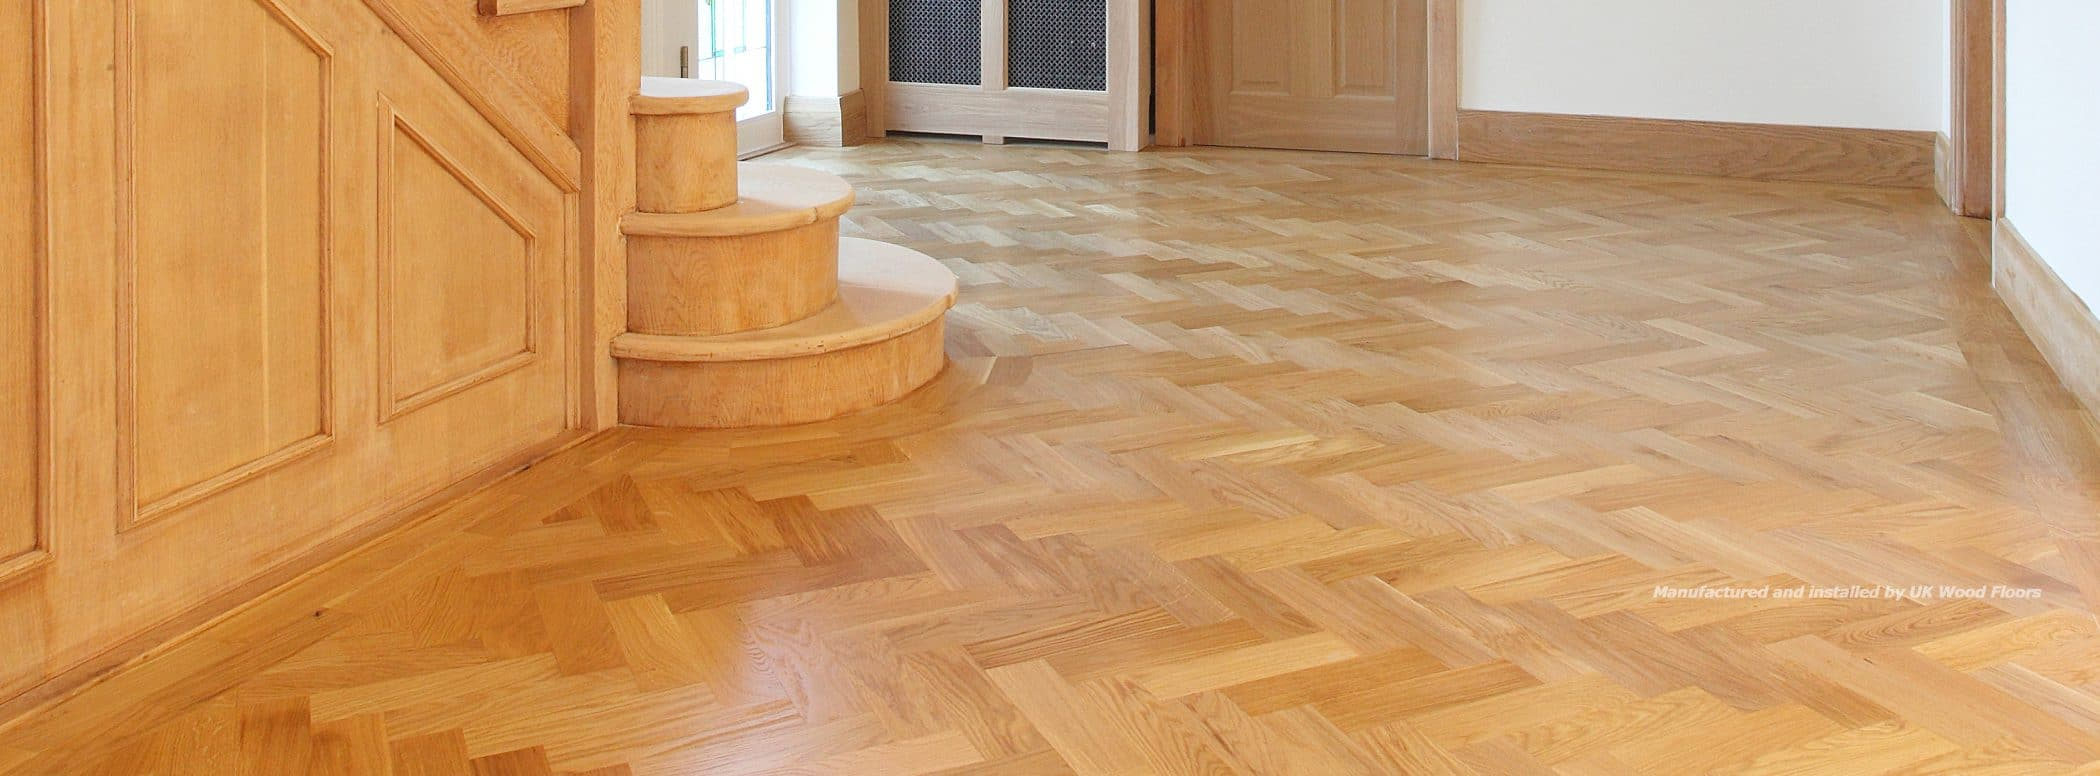 Parquet Wood Flooring ~ Parquet blocks uk wood floors bespoke joinery